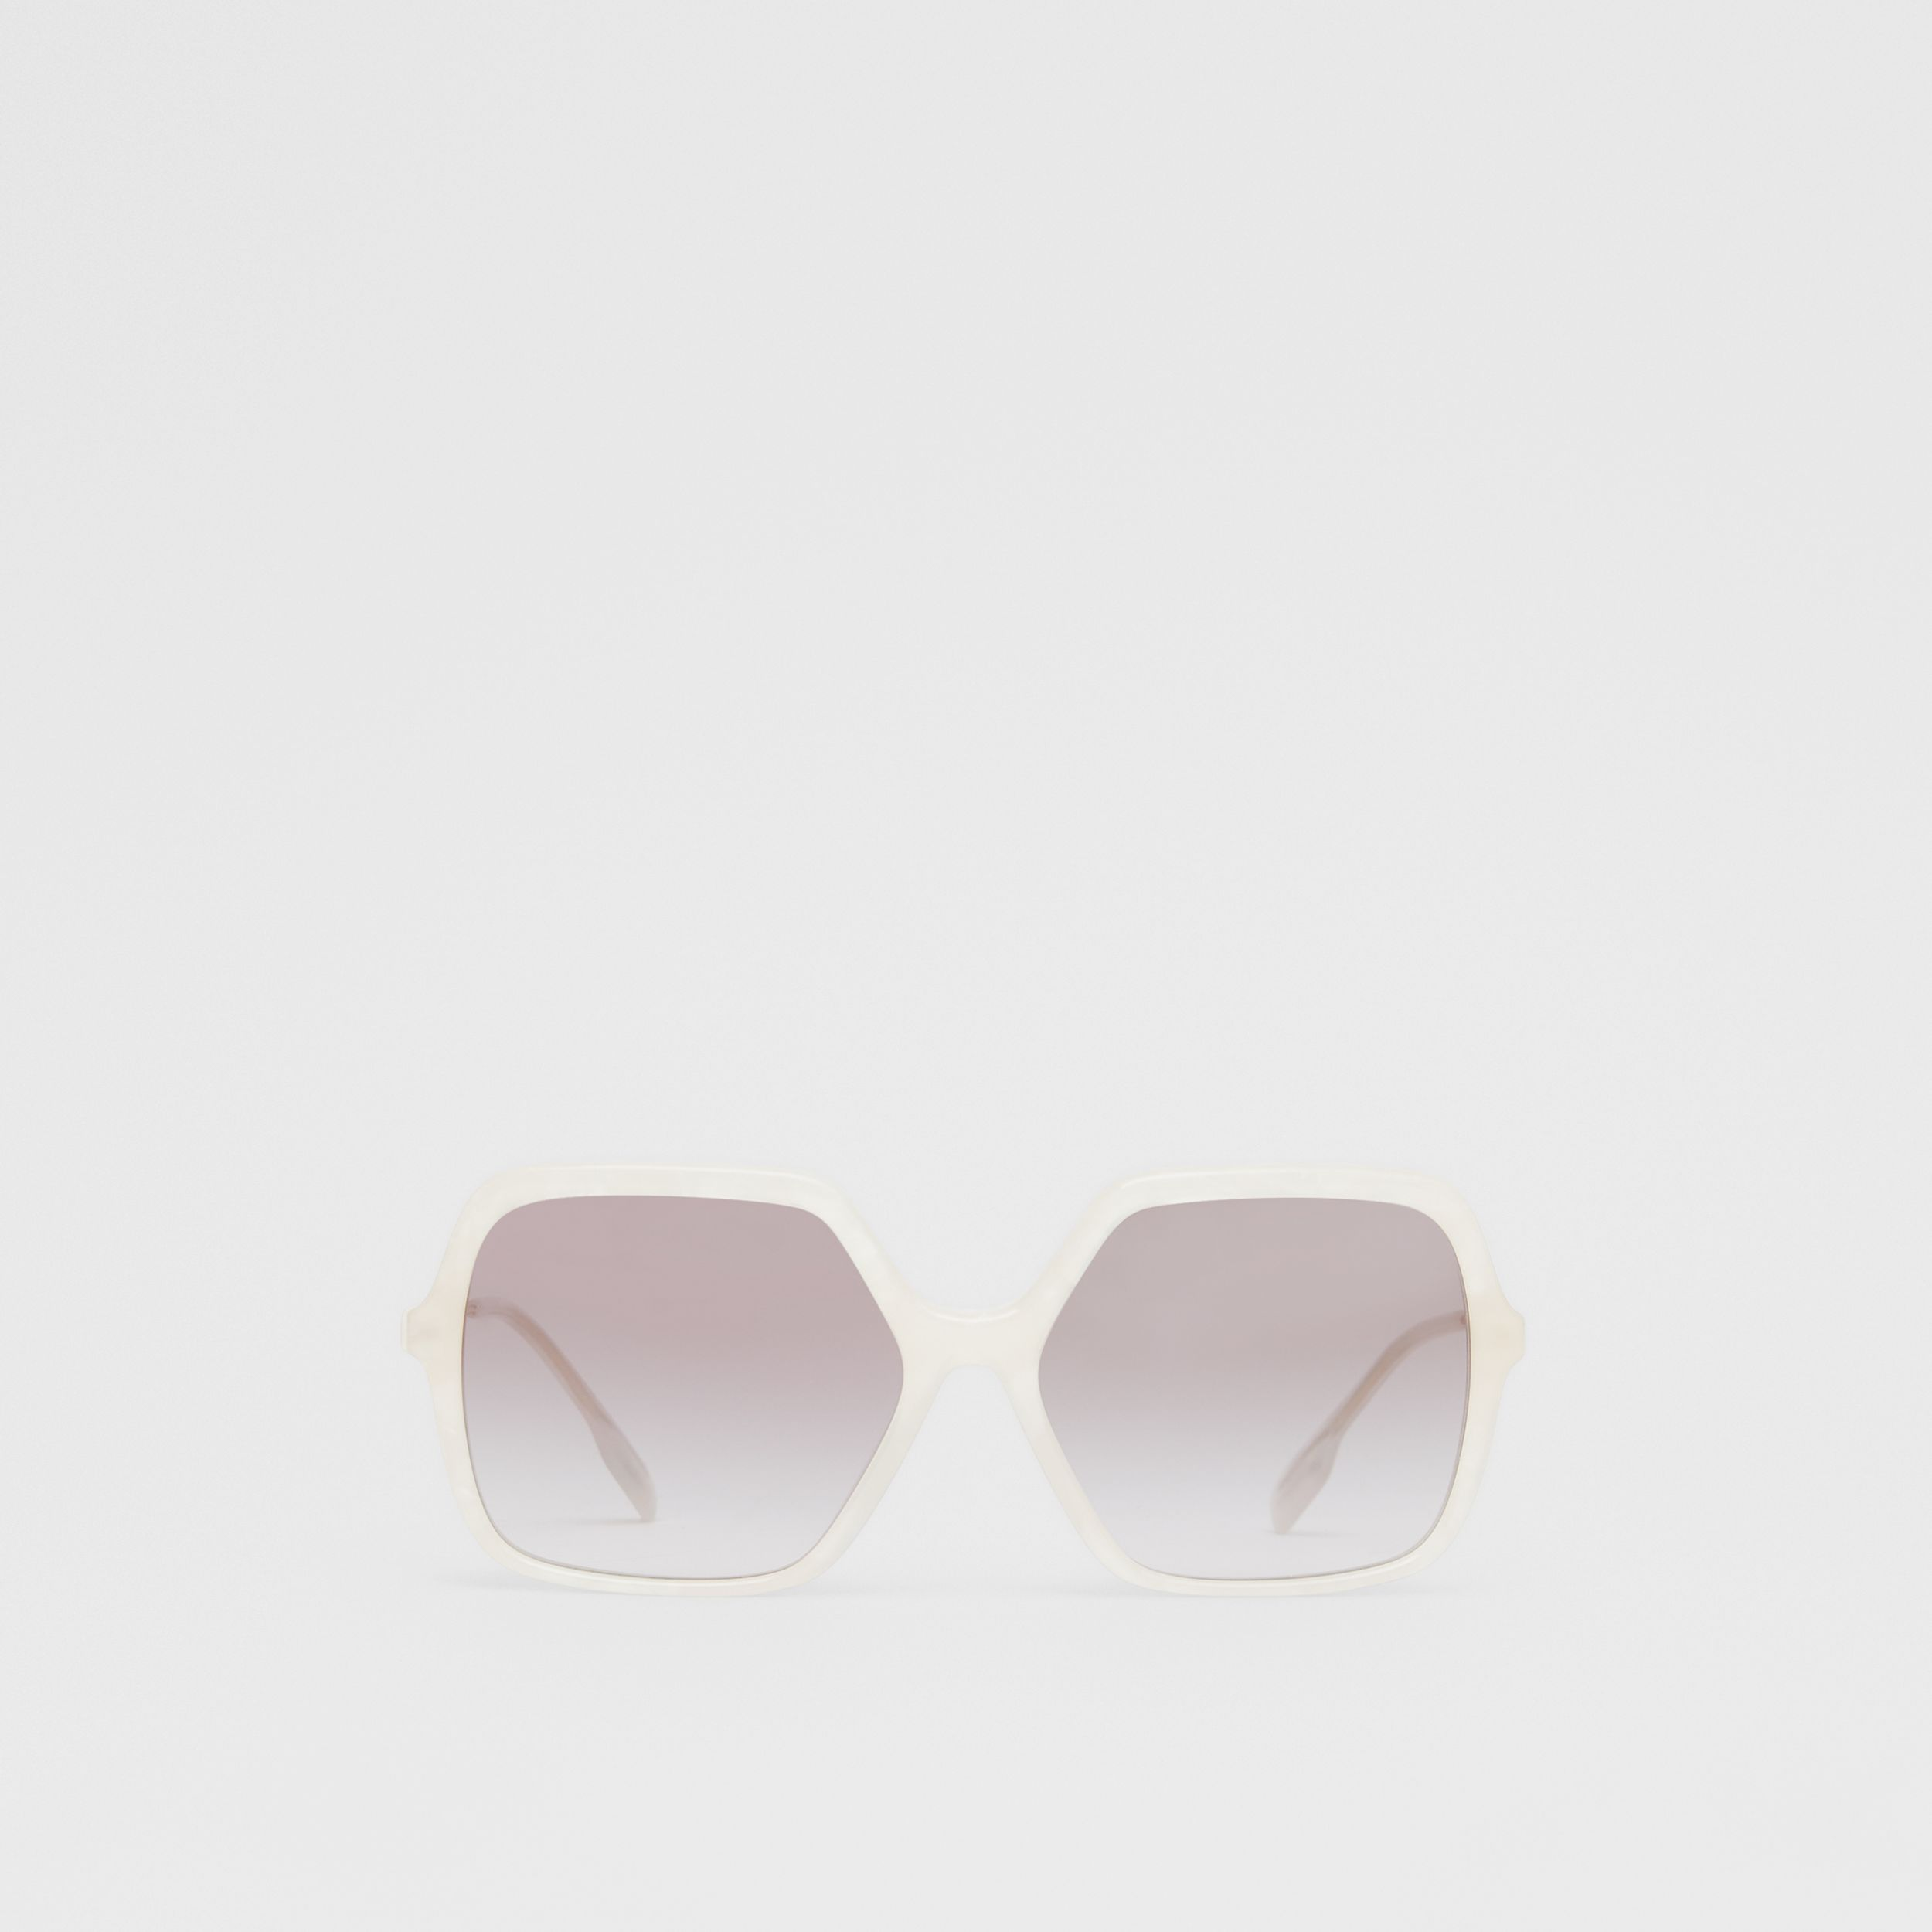 Oversized Square Frame Sunglasses in Pearl - Women | Burberry Canada - 1